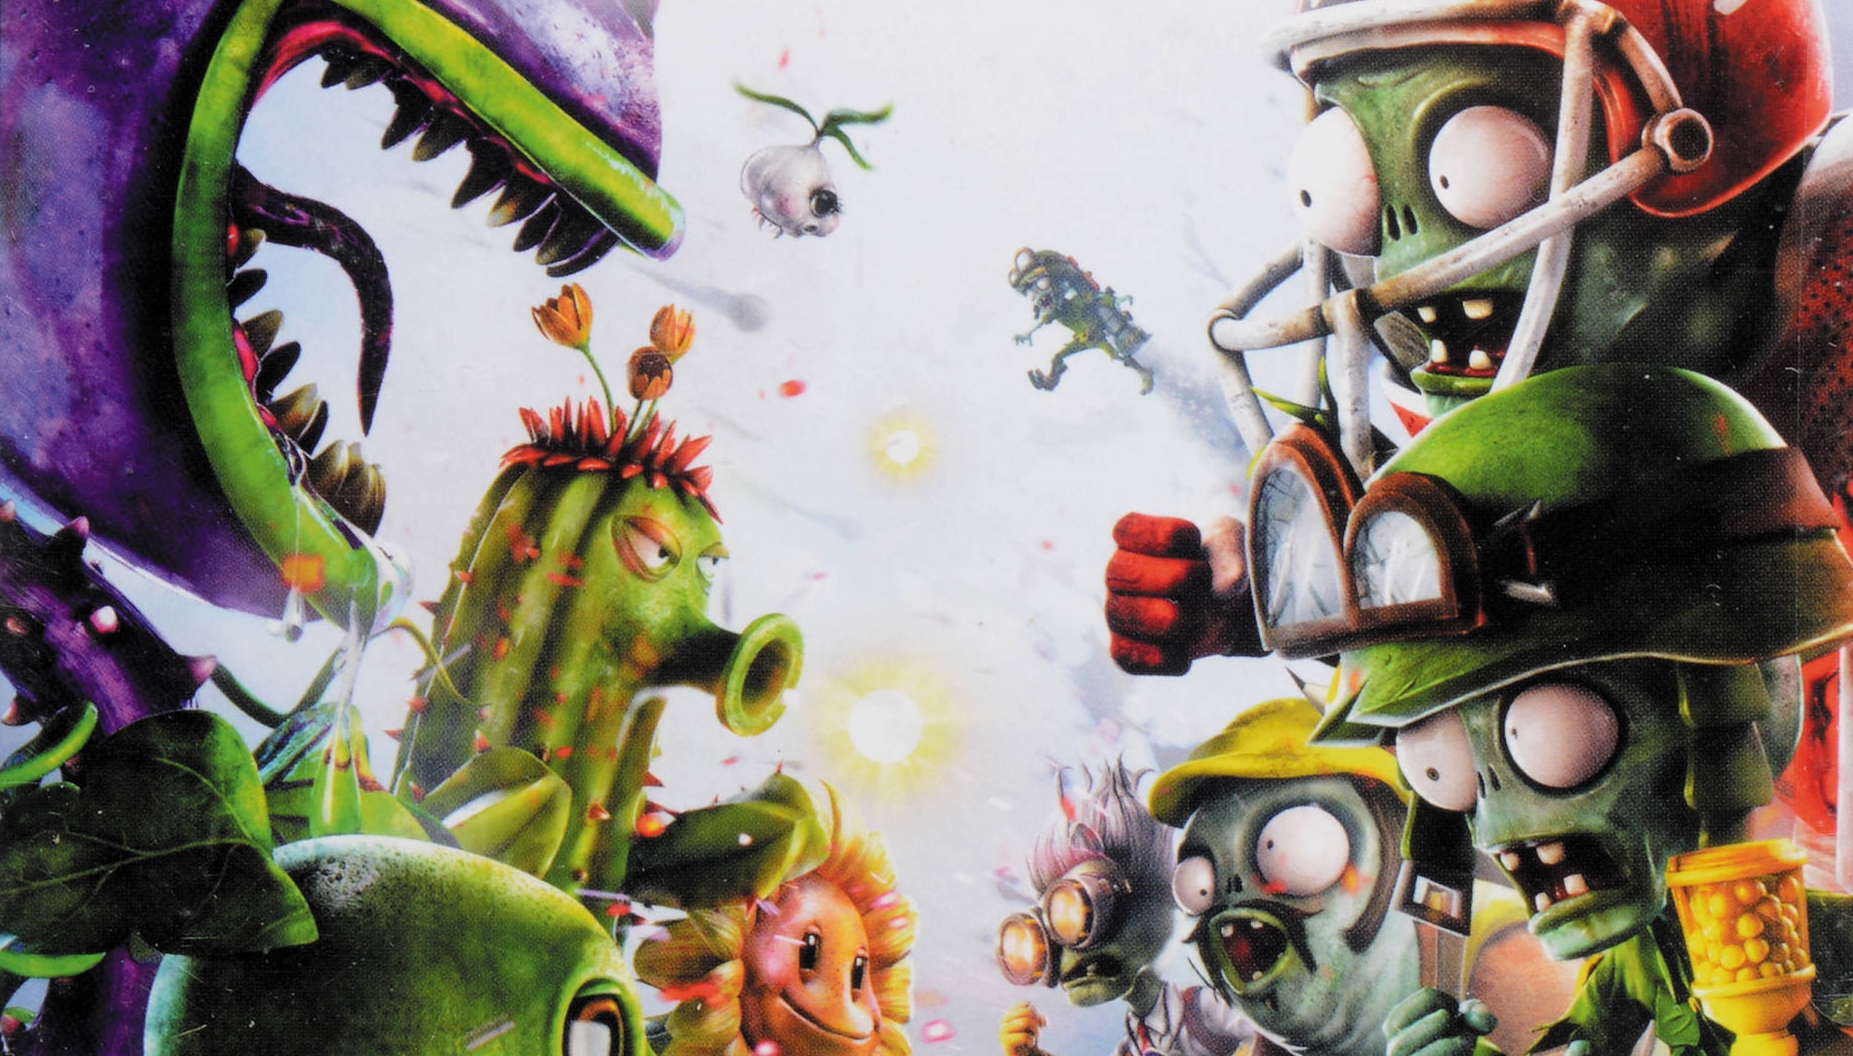 How EA and Plants vs. Zombies are battling binge culture